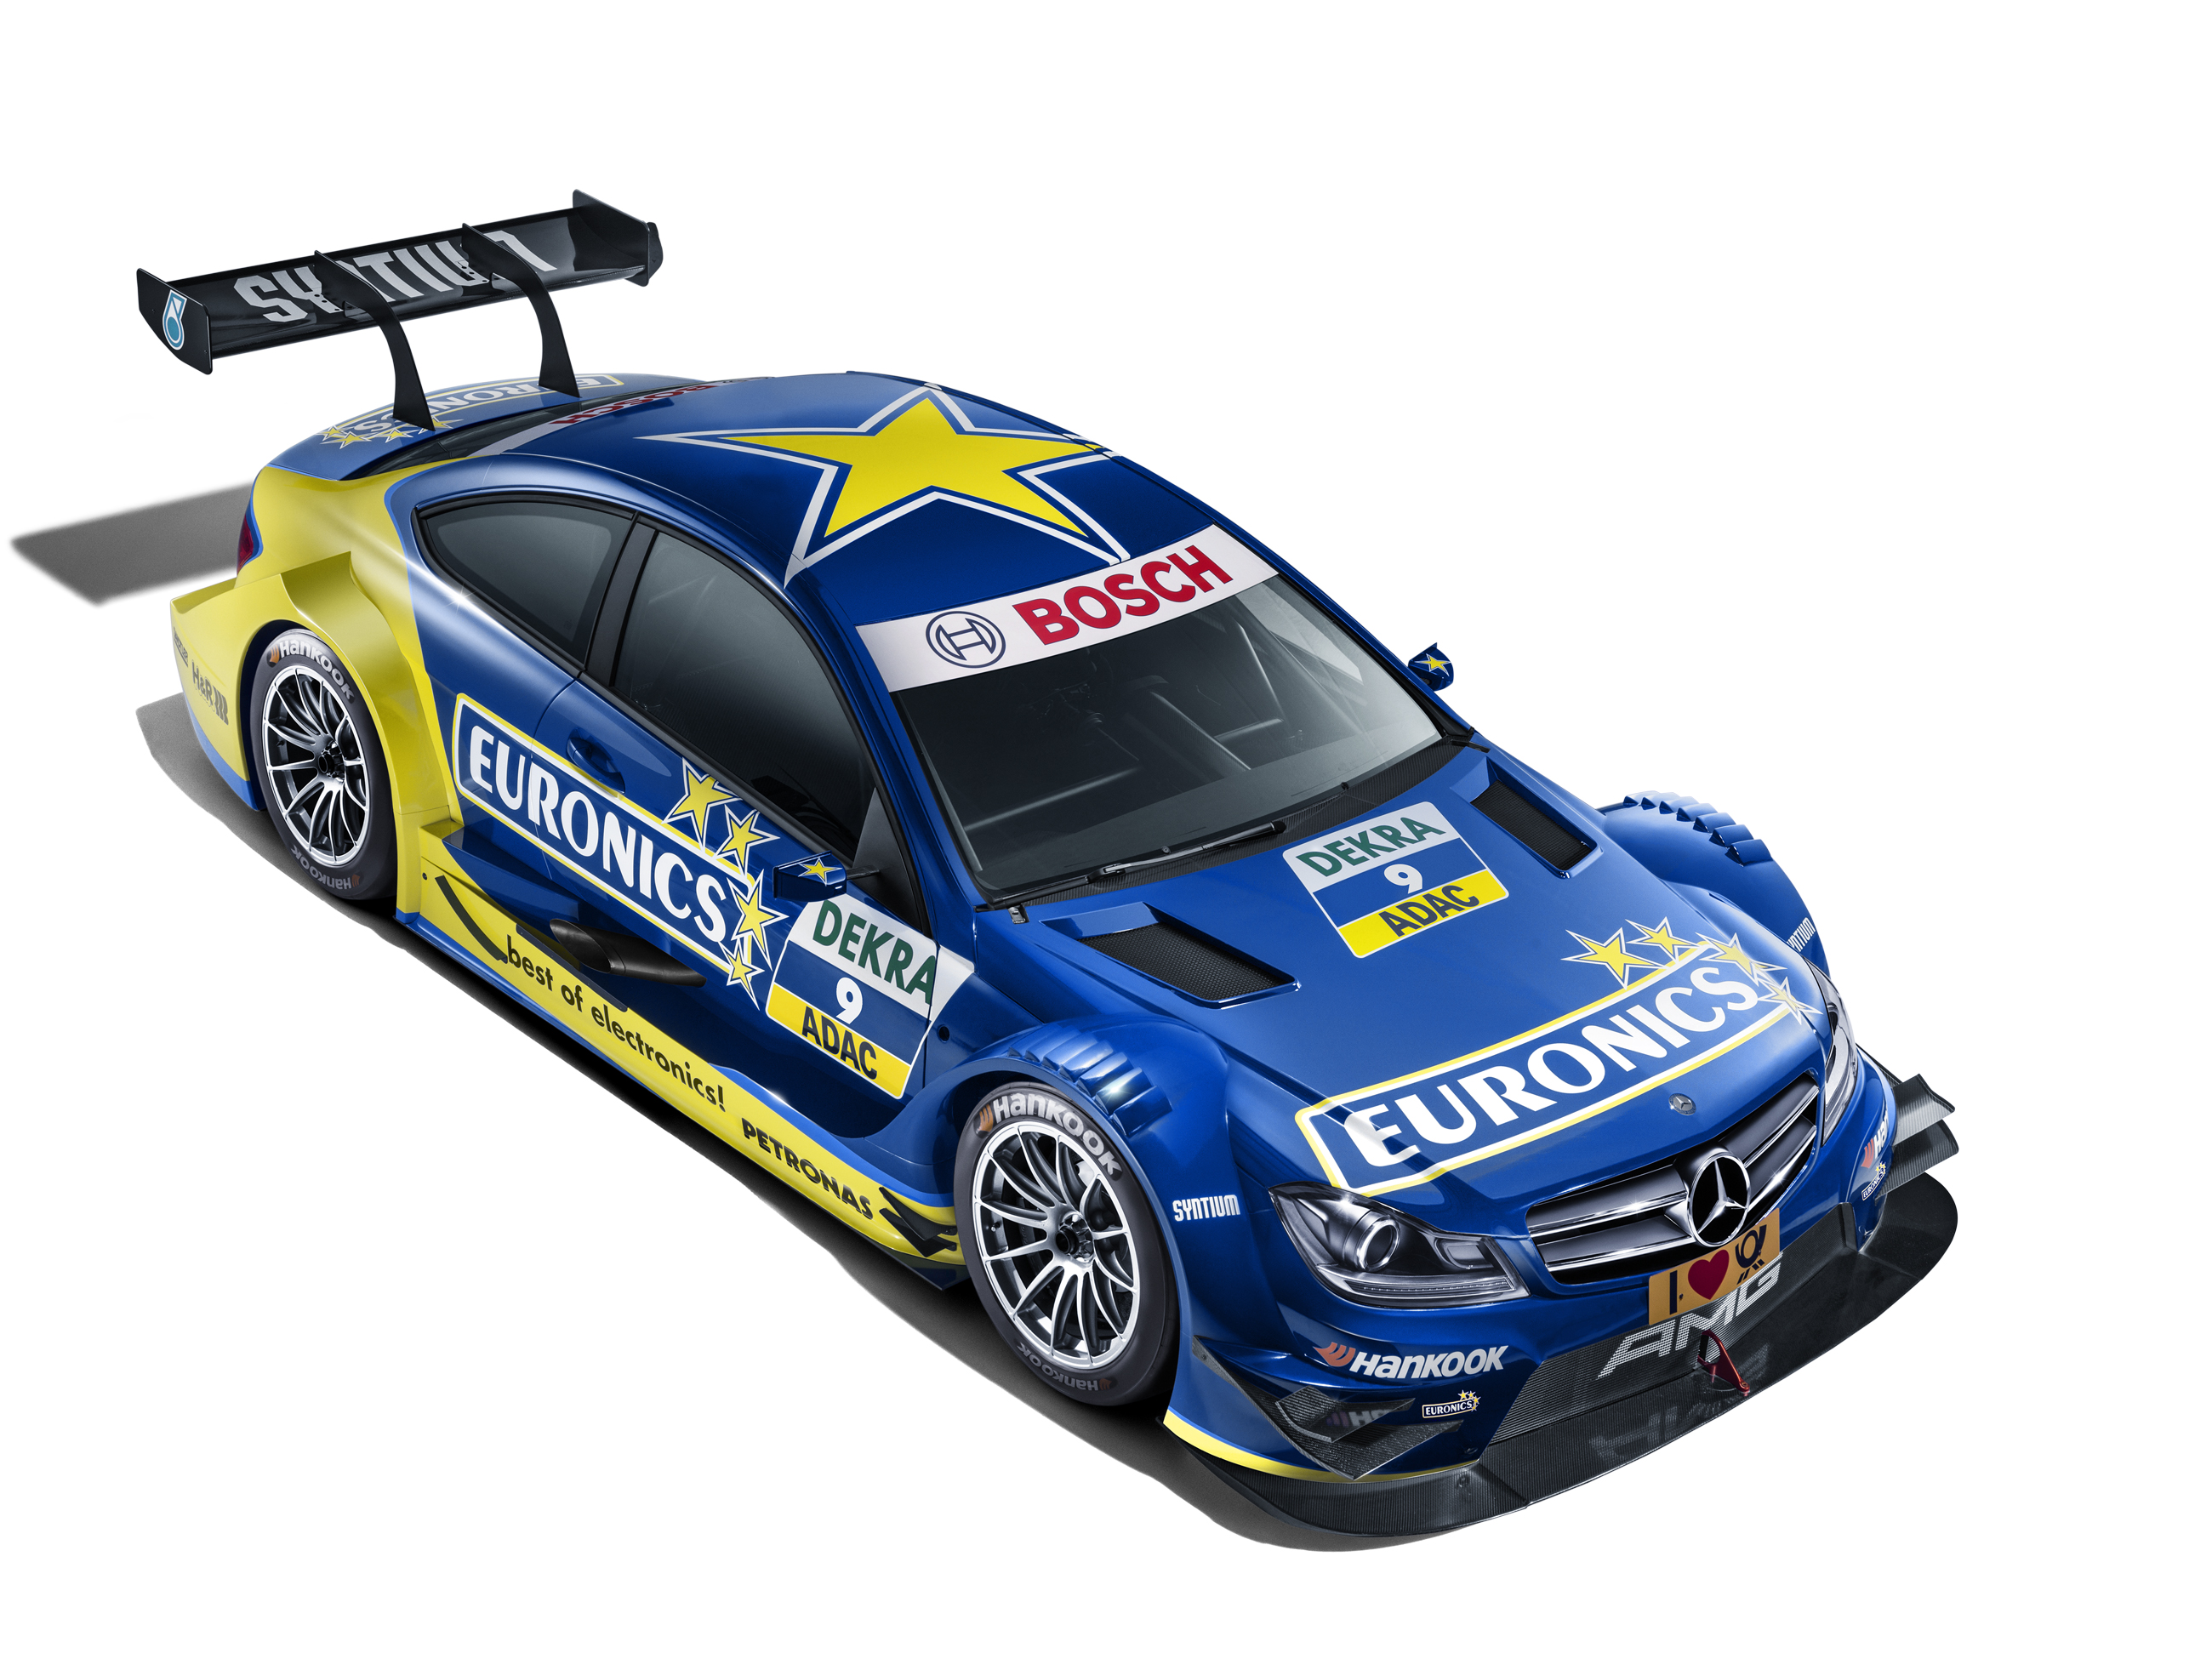 17 Gary Paffet And Christian Vietoris To Race Under Euronics Banner